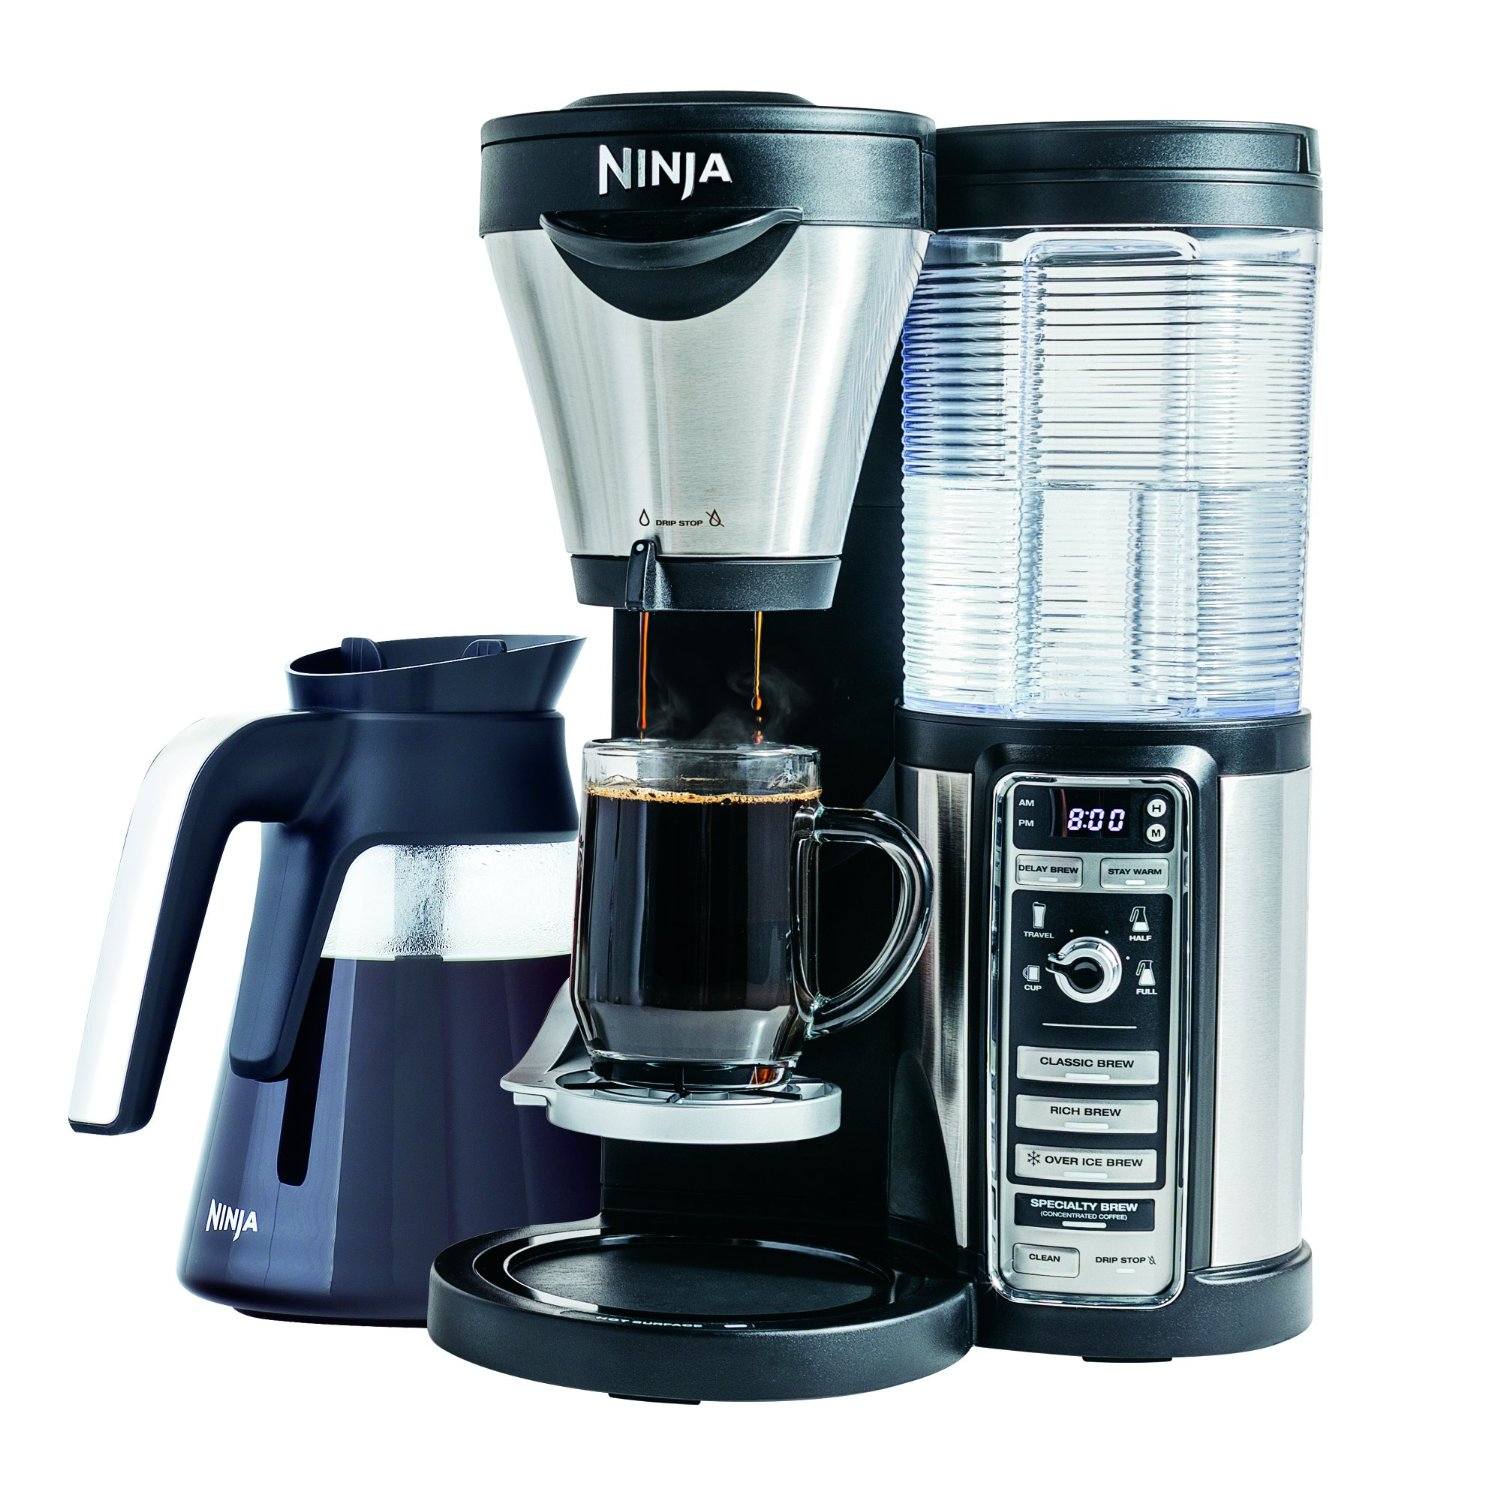 Coffee maker with grinder and thermal carafe - Top 10 Best Coffee Makers